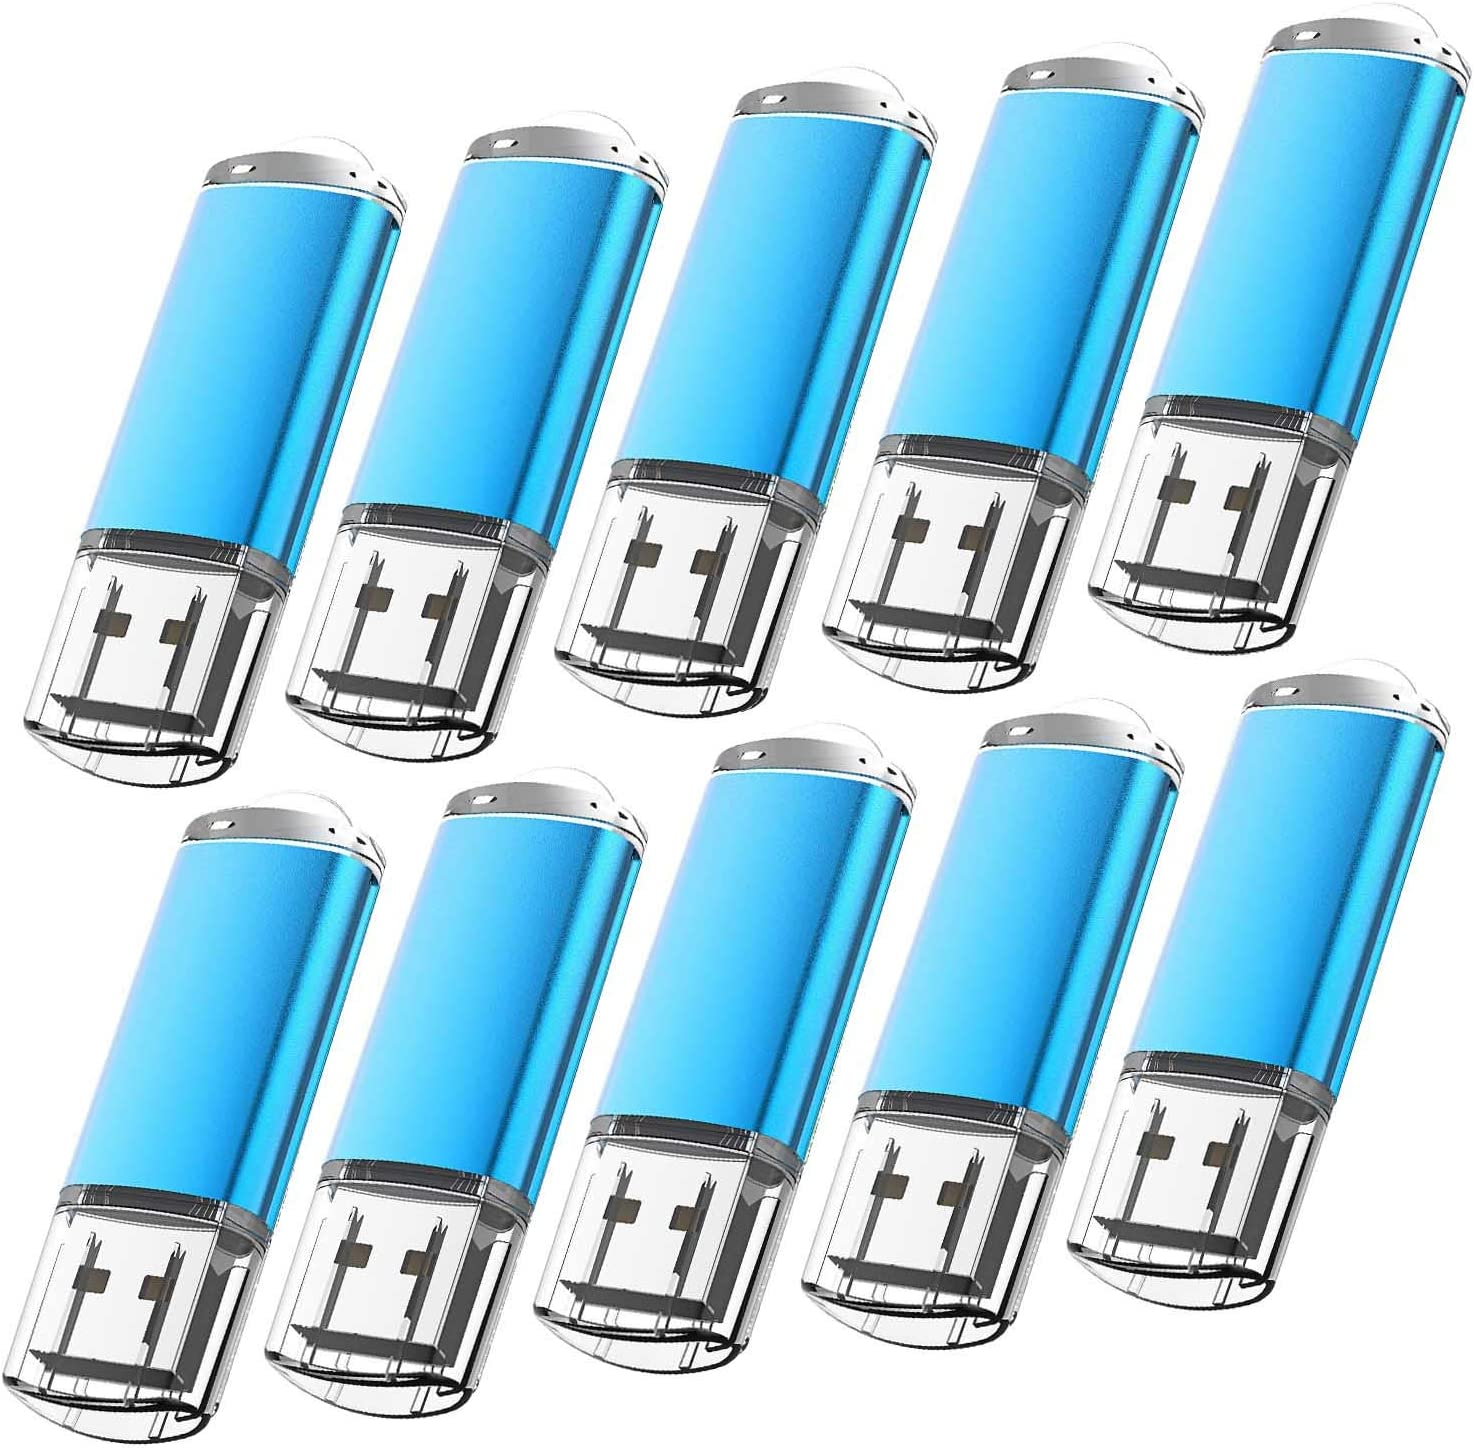 10 Pack Flash Drive 8GB USB 2.0 Thumb Drive Capped Memory Stick by Kootion, Blue